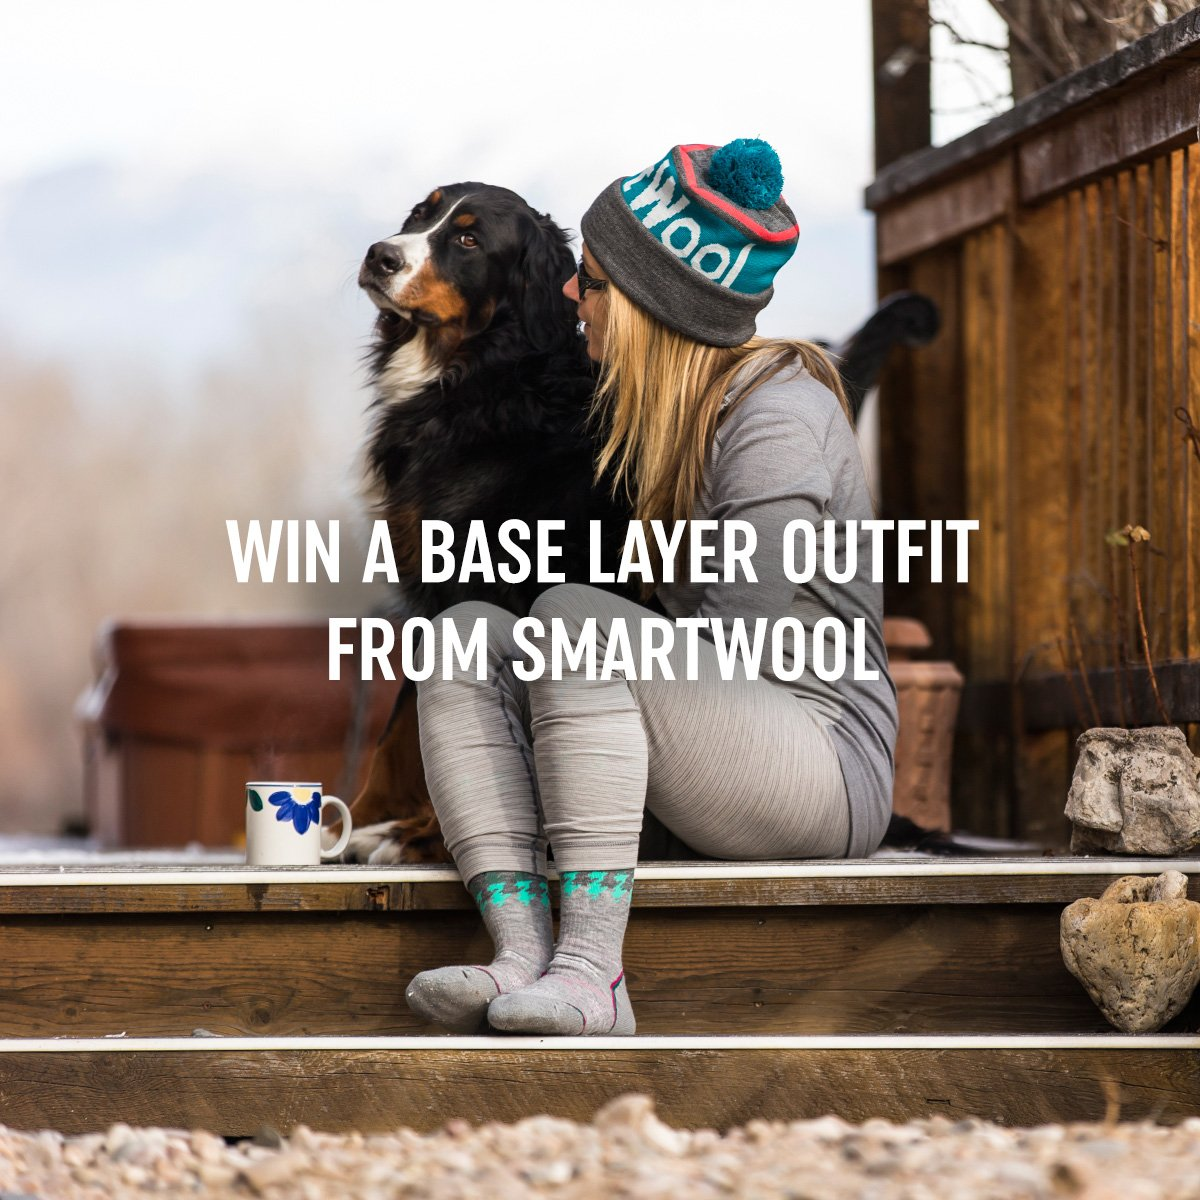 Want to be this cozy? Win a baselayer outfit from @Smartwool RT for a chance to win by Mon! https://t.co/d3OO5WW462 https://t.co/h9RagfRD4P